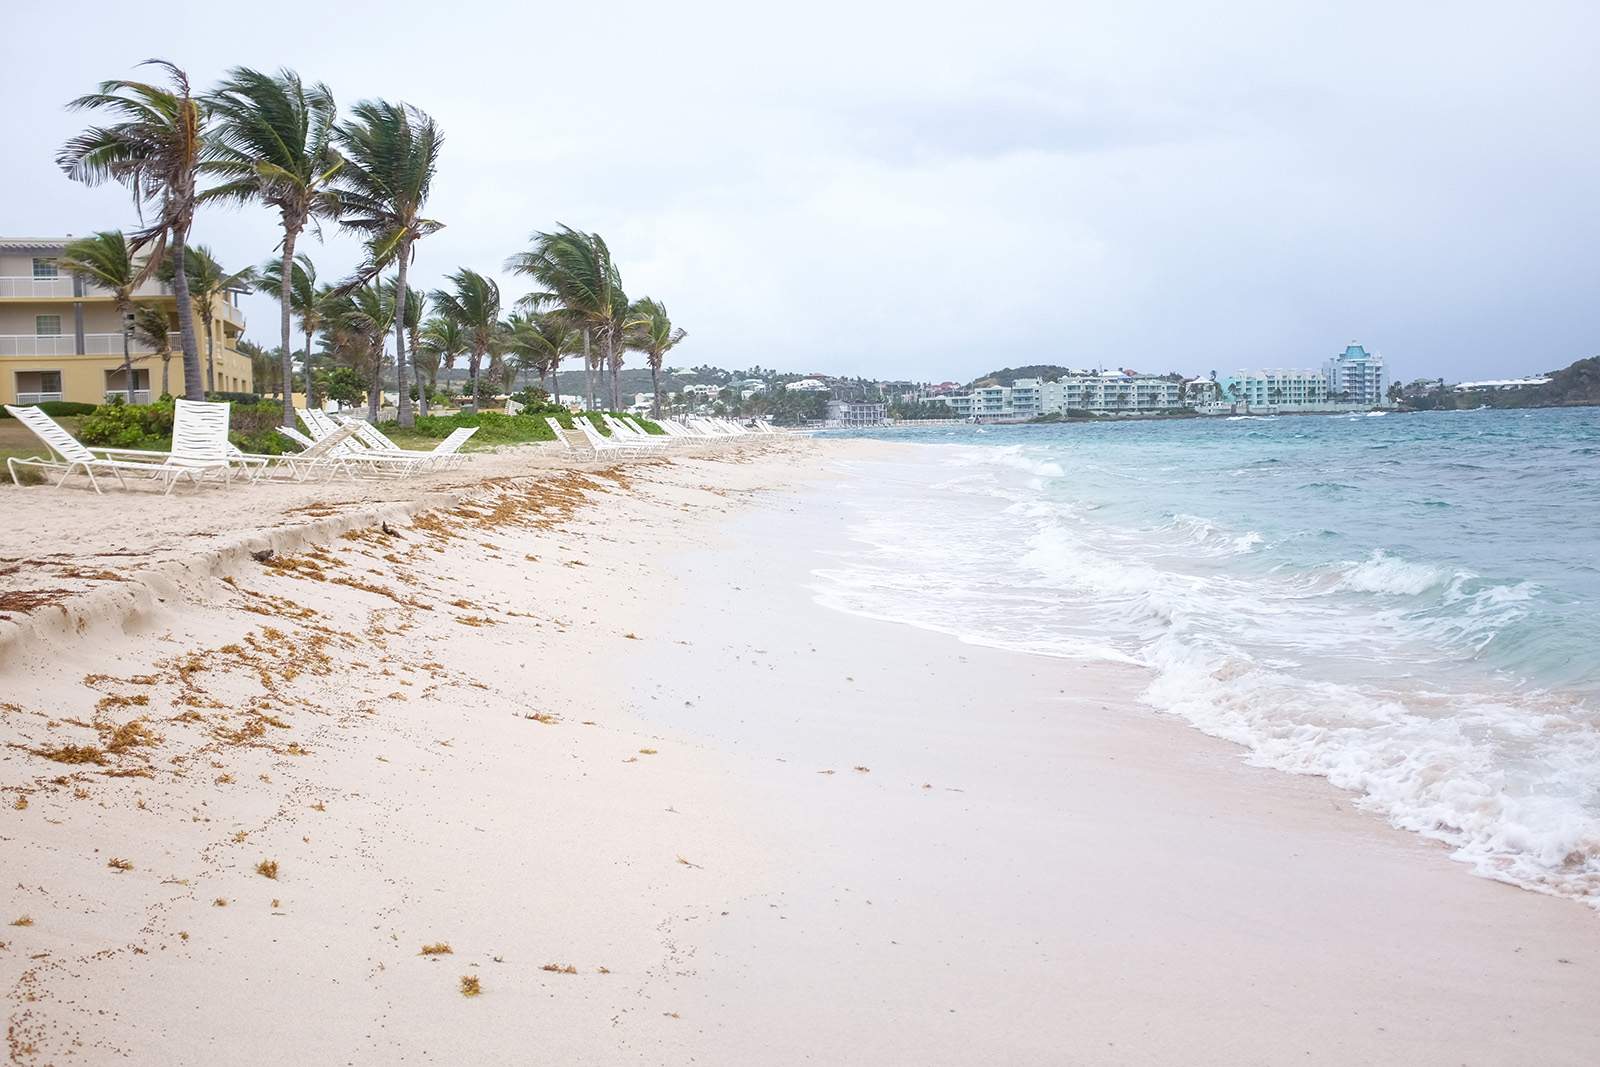 Dawn Beach, St. Maarten